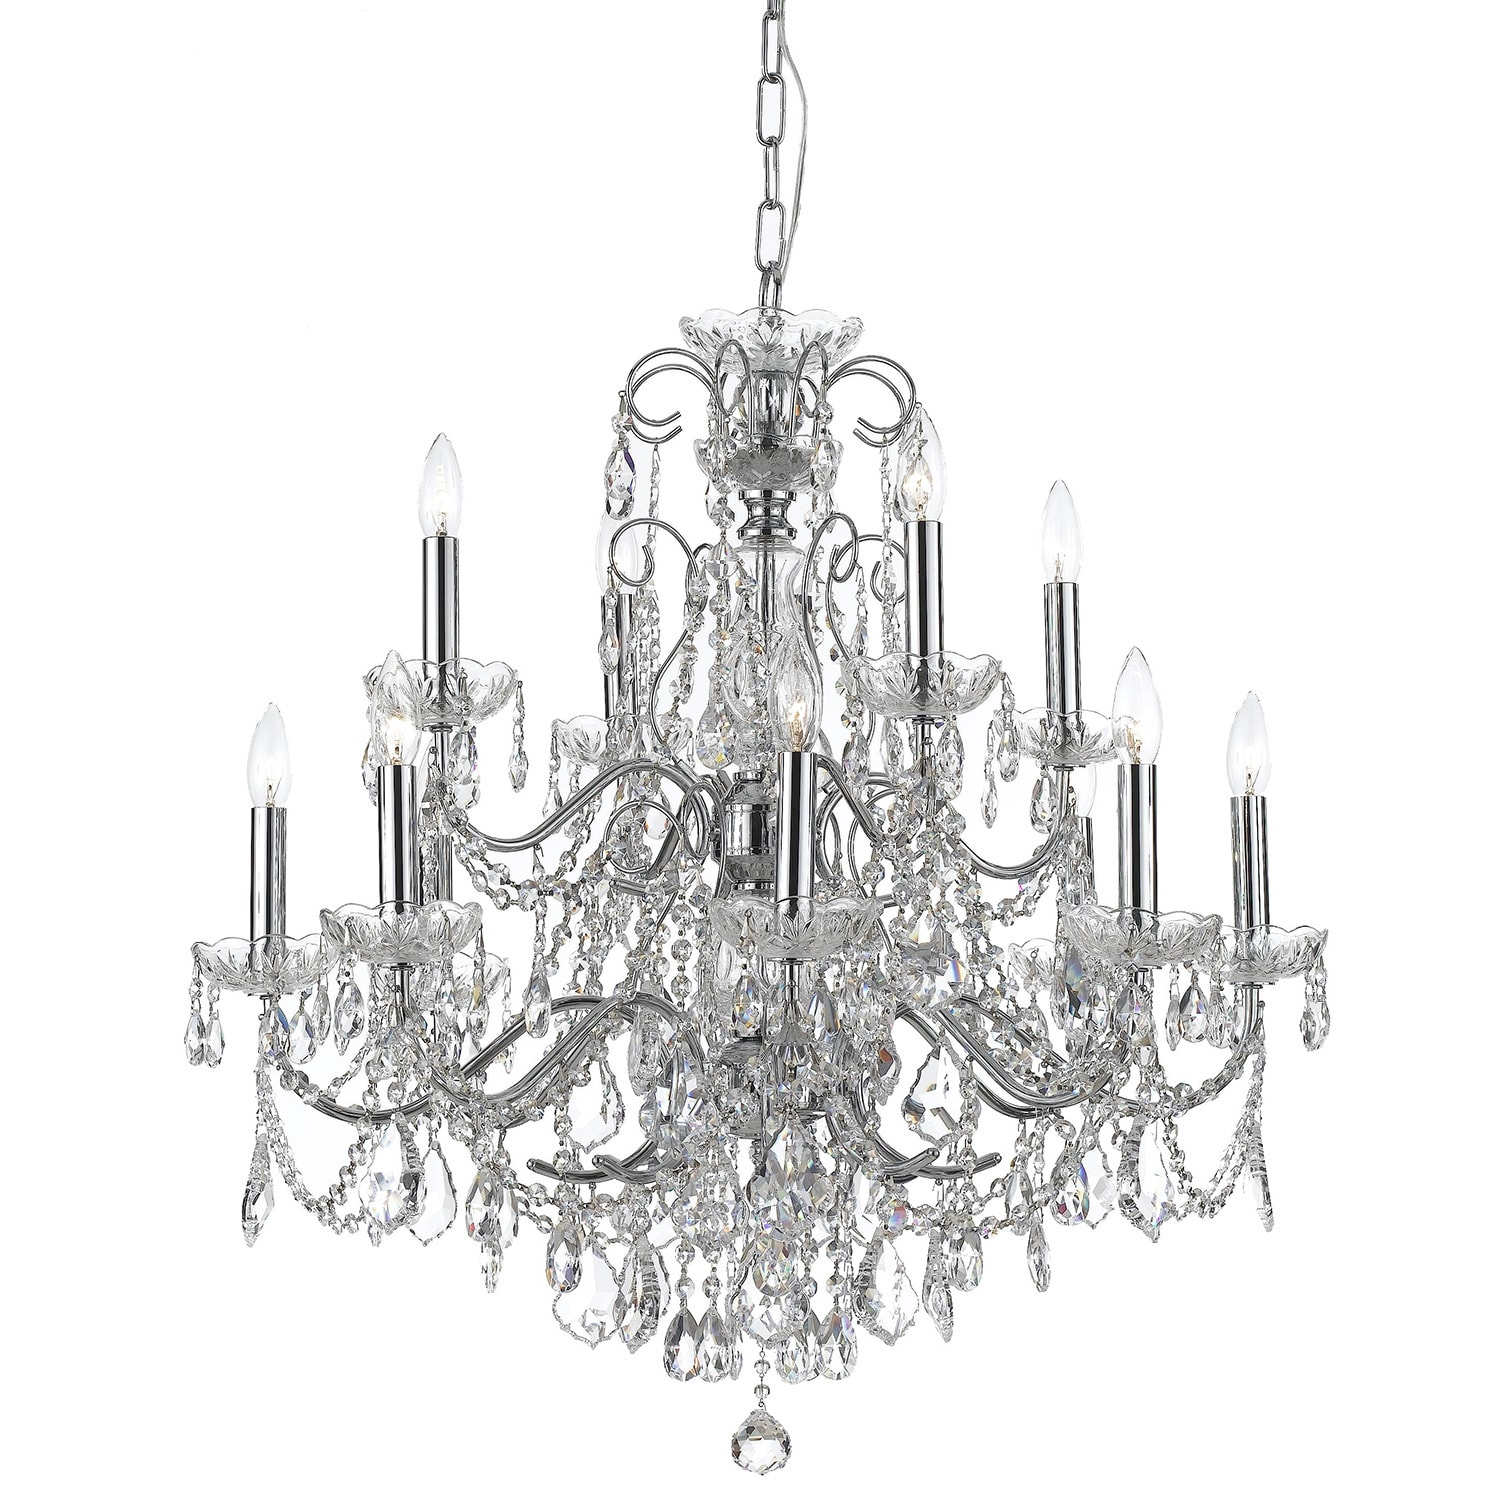 Crystorama Imperial Collection 12 light Chrome Crystal Chandelier